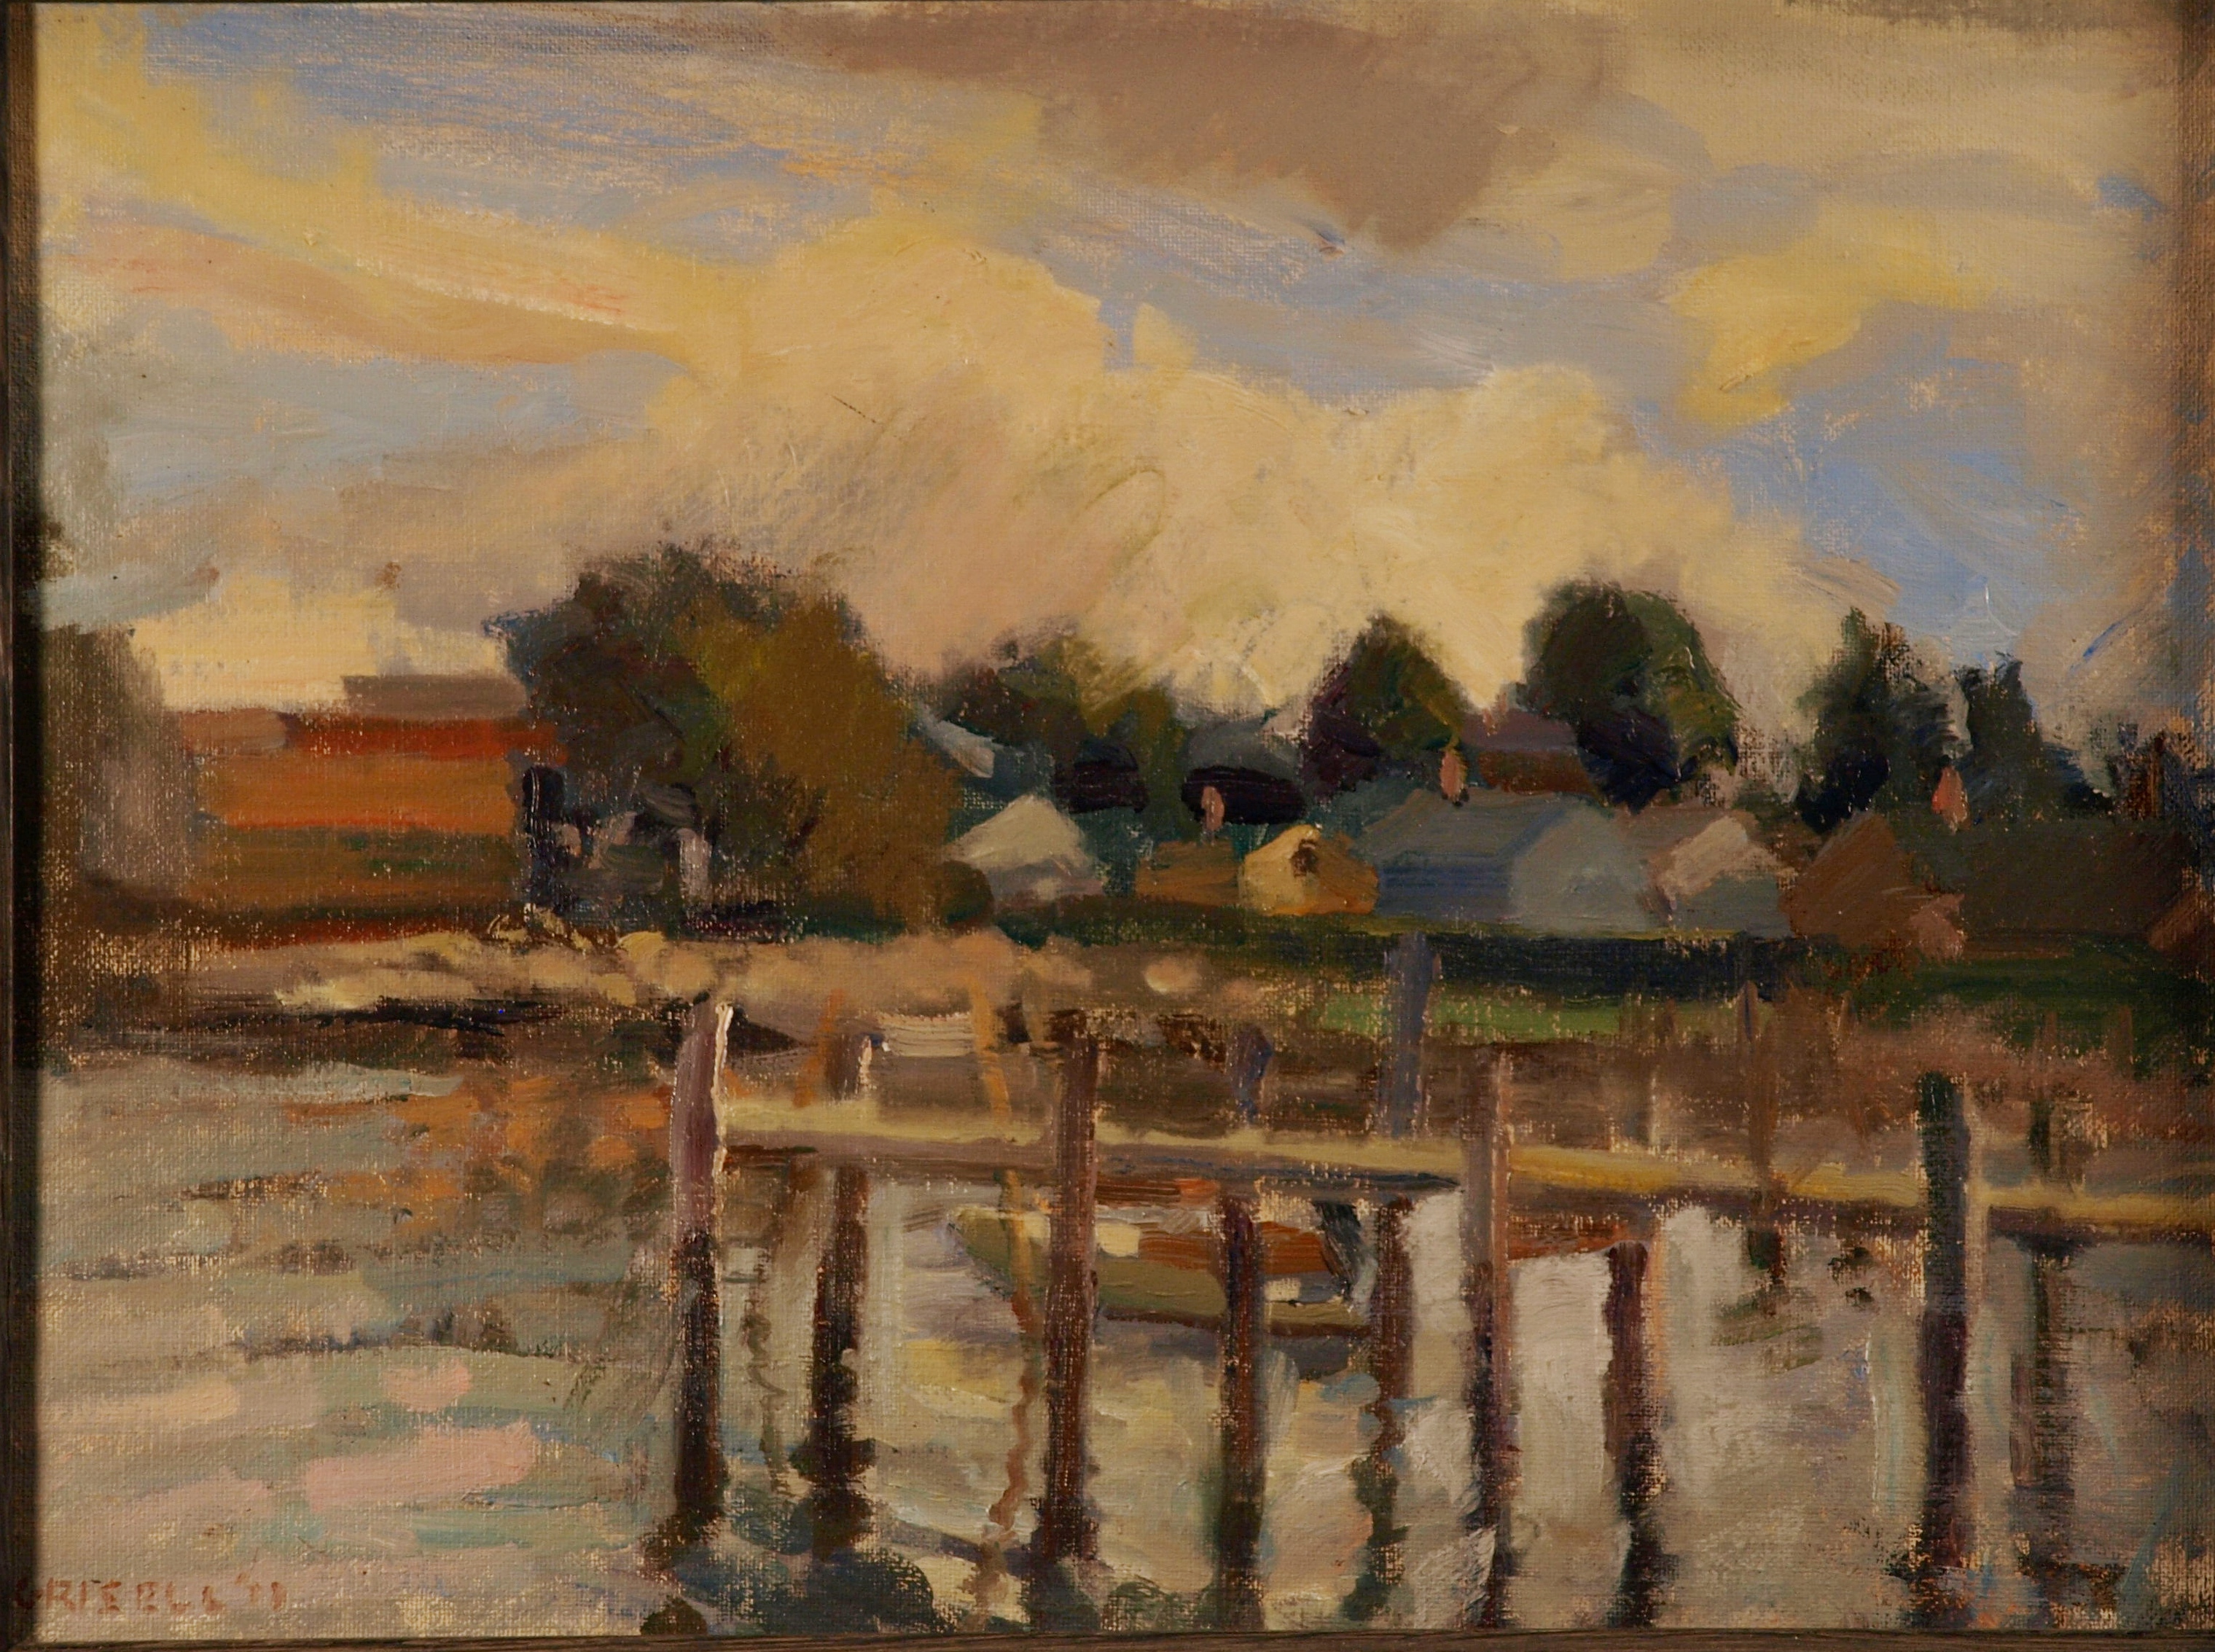 View of Stonington, Oil on Canvas on Panel, 12 x 16 Inches, by Susan Grisell, $275